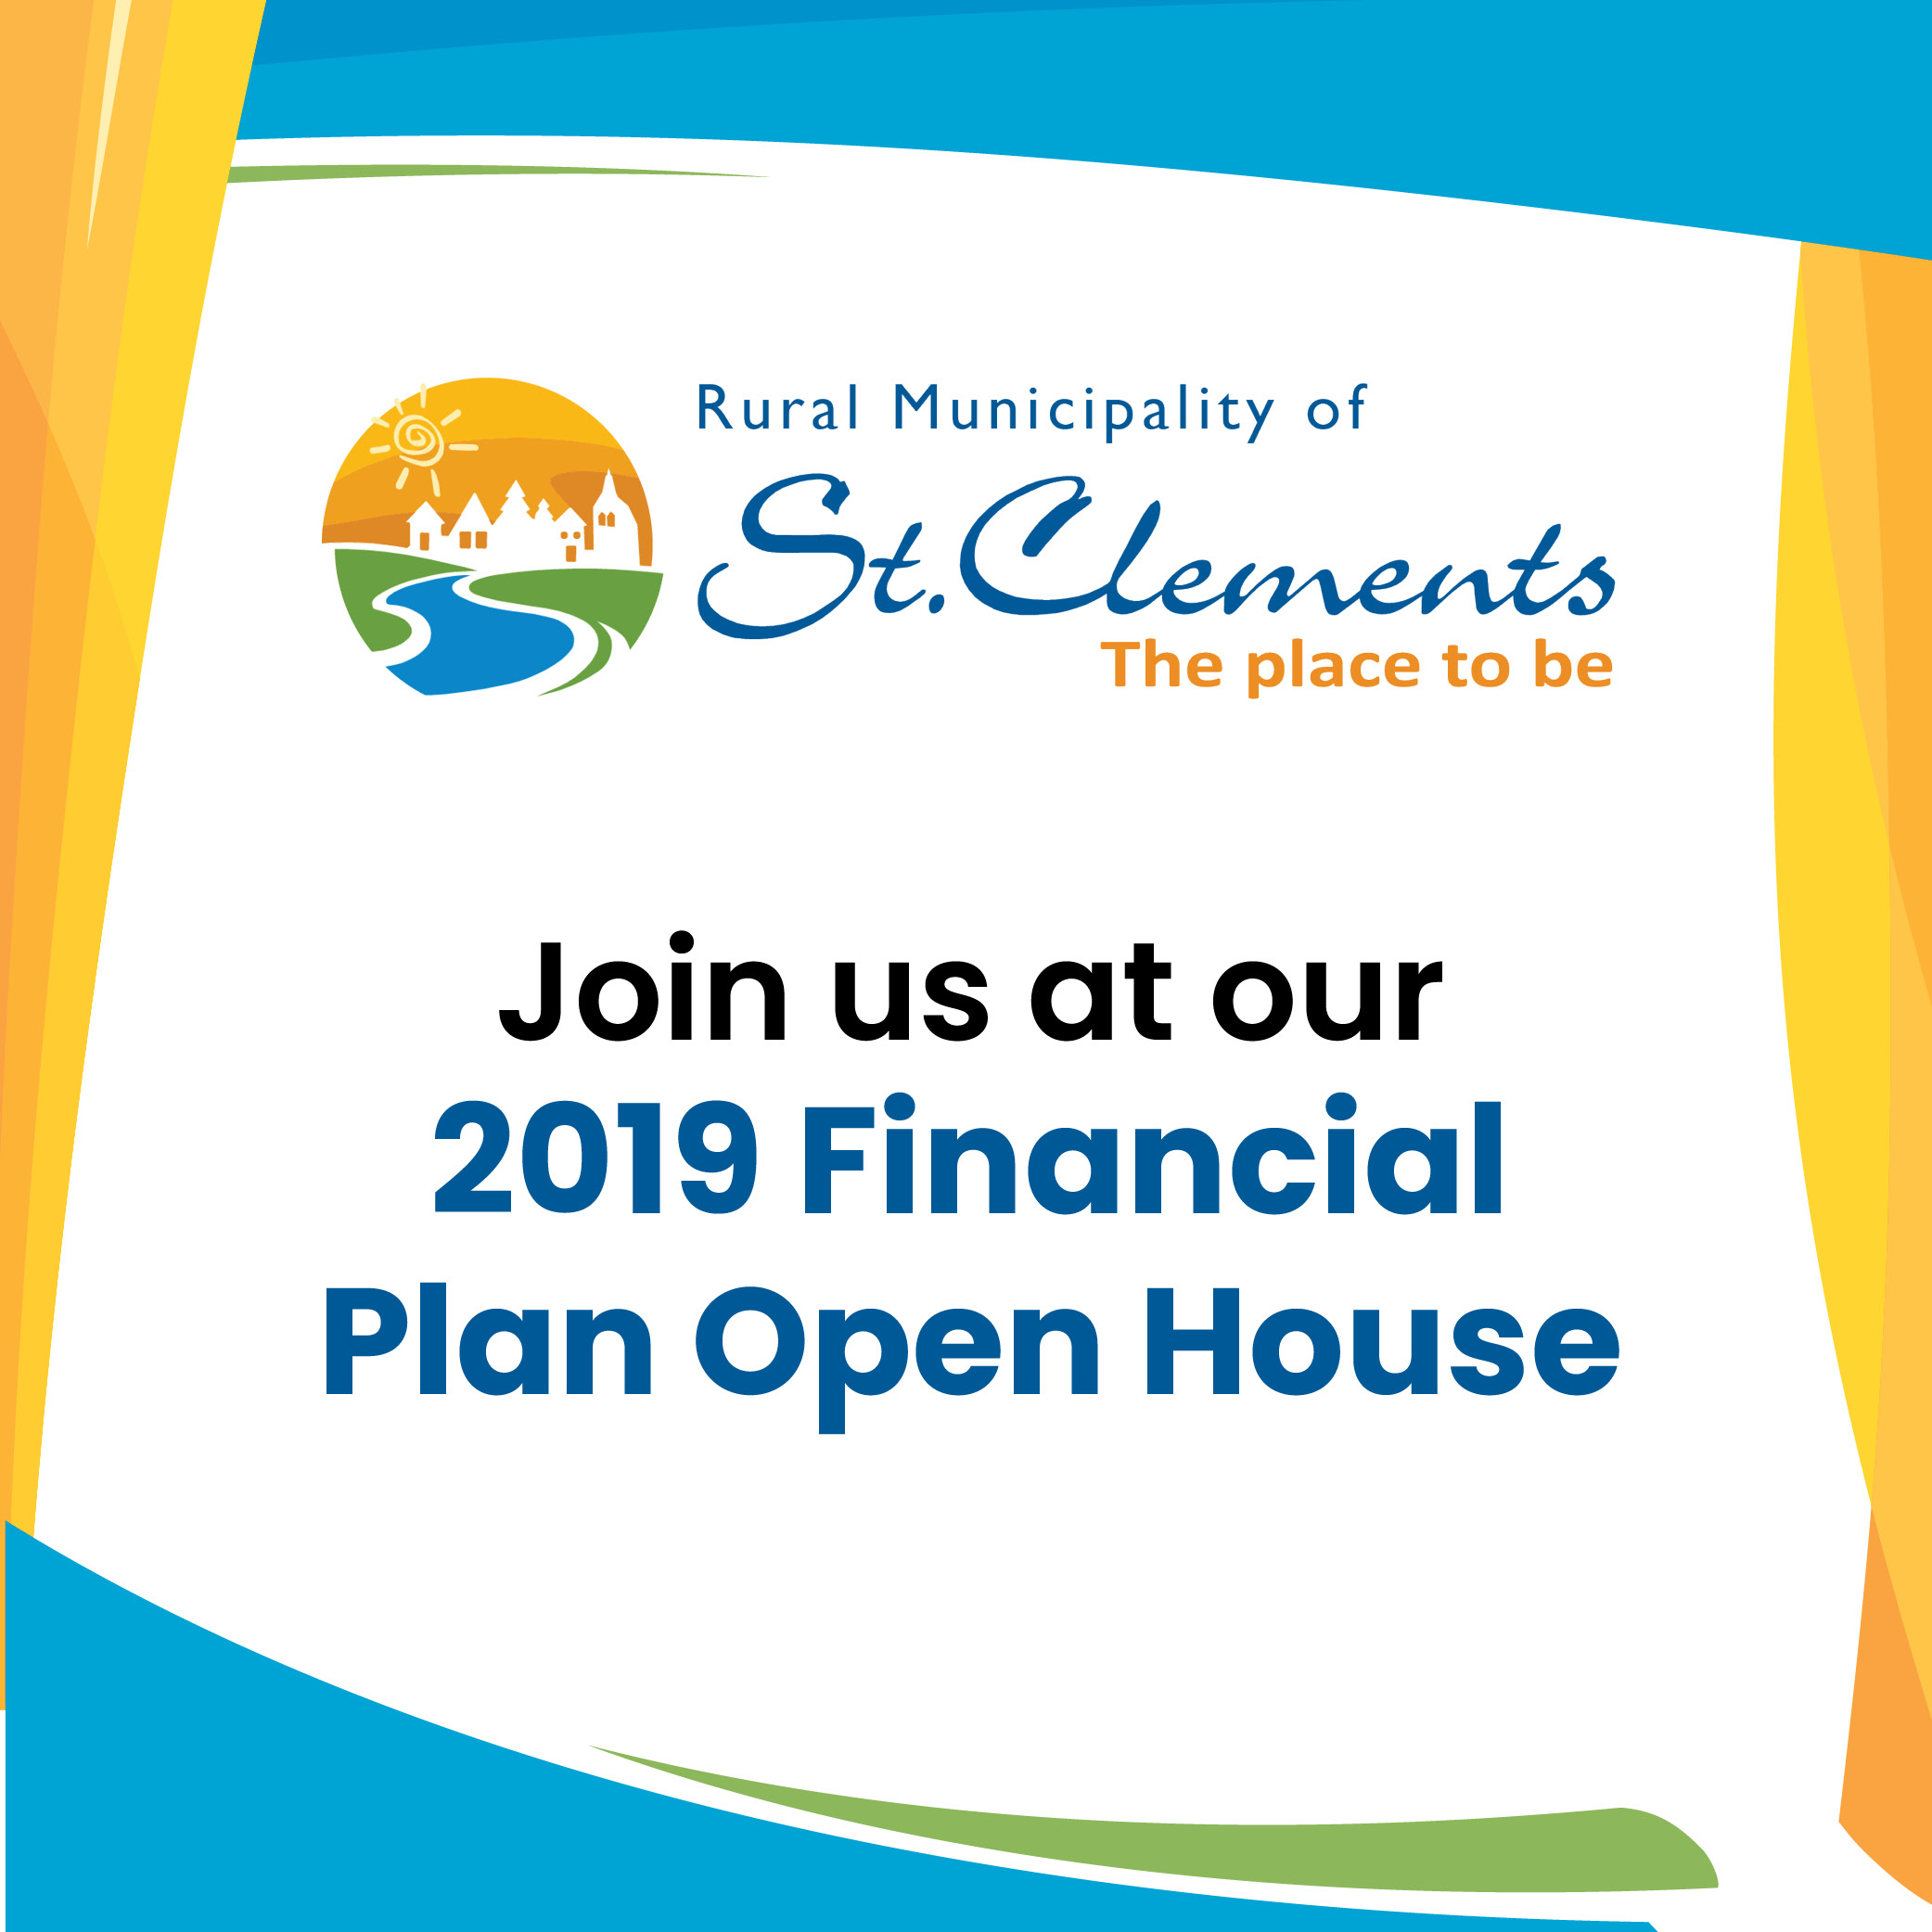 2019 Financial Plan Open House